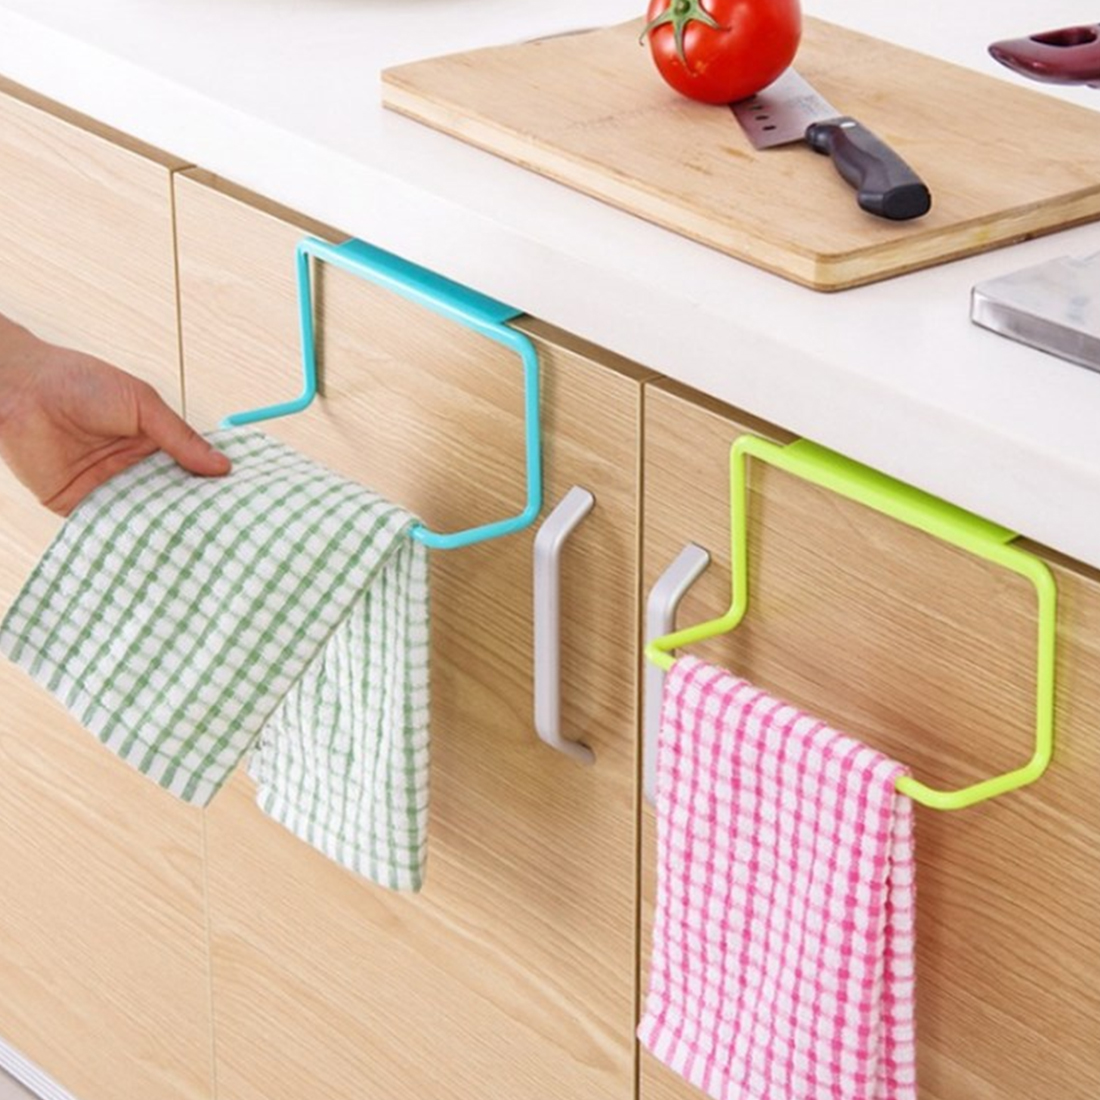 Hot 1pc Convenient Towel Rack Hanging Holder Organizer Bathroom Kitchen Cabinet Cupboard Hanger 19*9*6cm